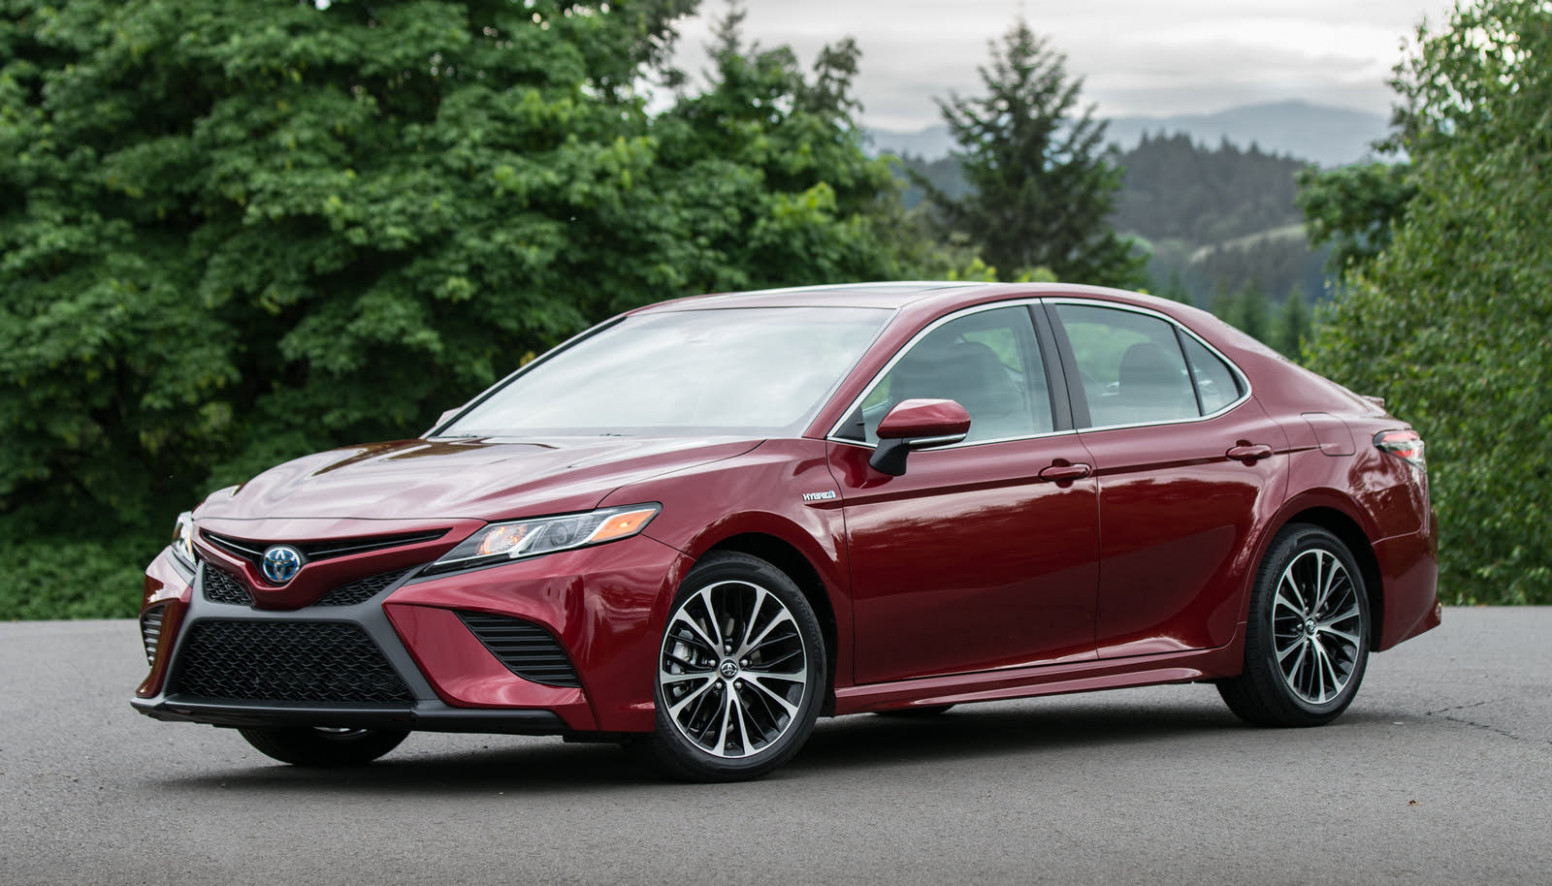 9 Toyota Camry Hybrid - Overview - CarGurus - toyota camry hybrid 2020